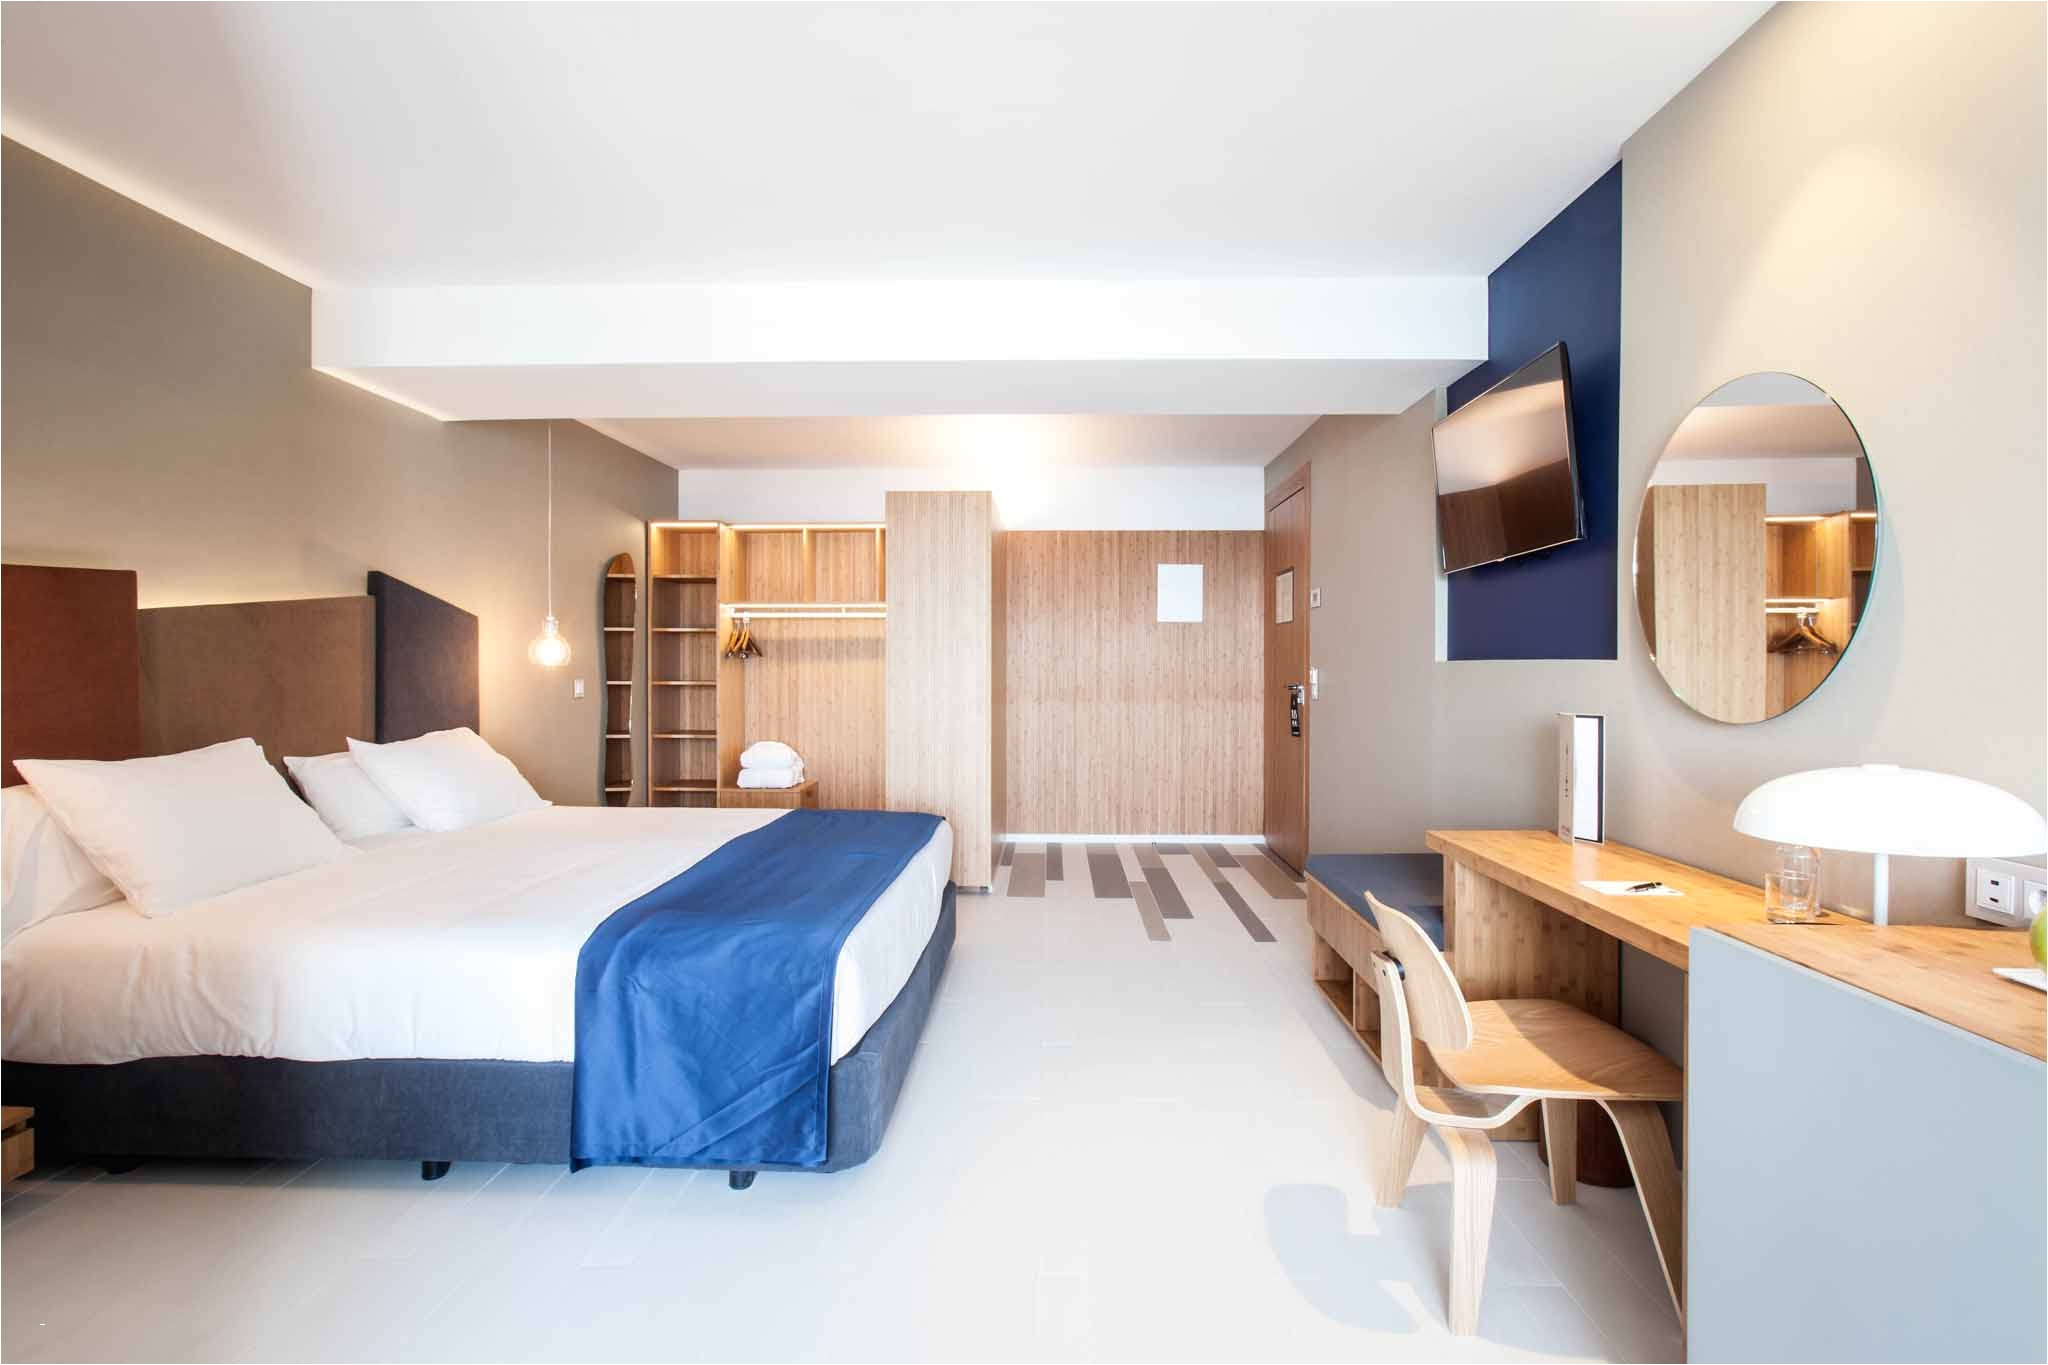 2 bedroom suites beautiful two bedroom suites awesome hotel od talamanca ibiza zimmer und